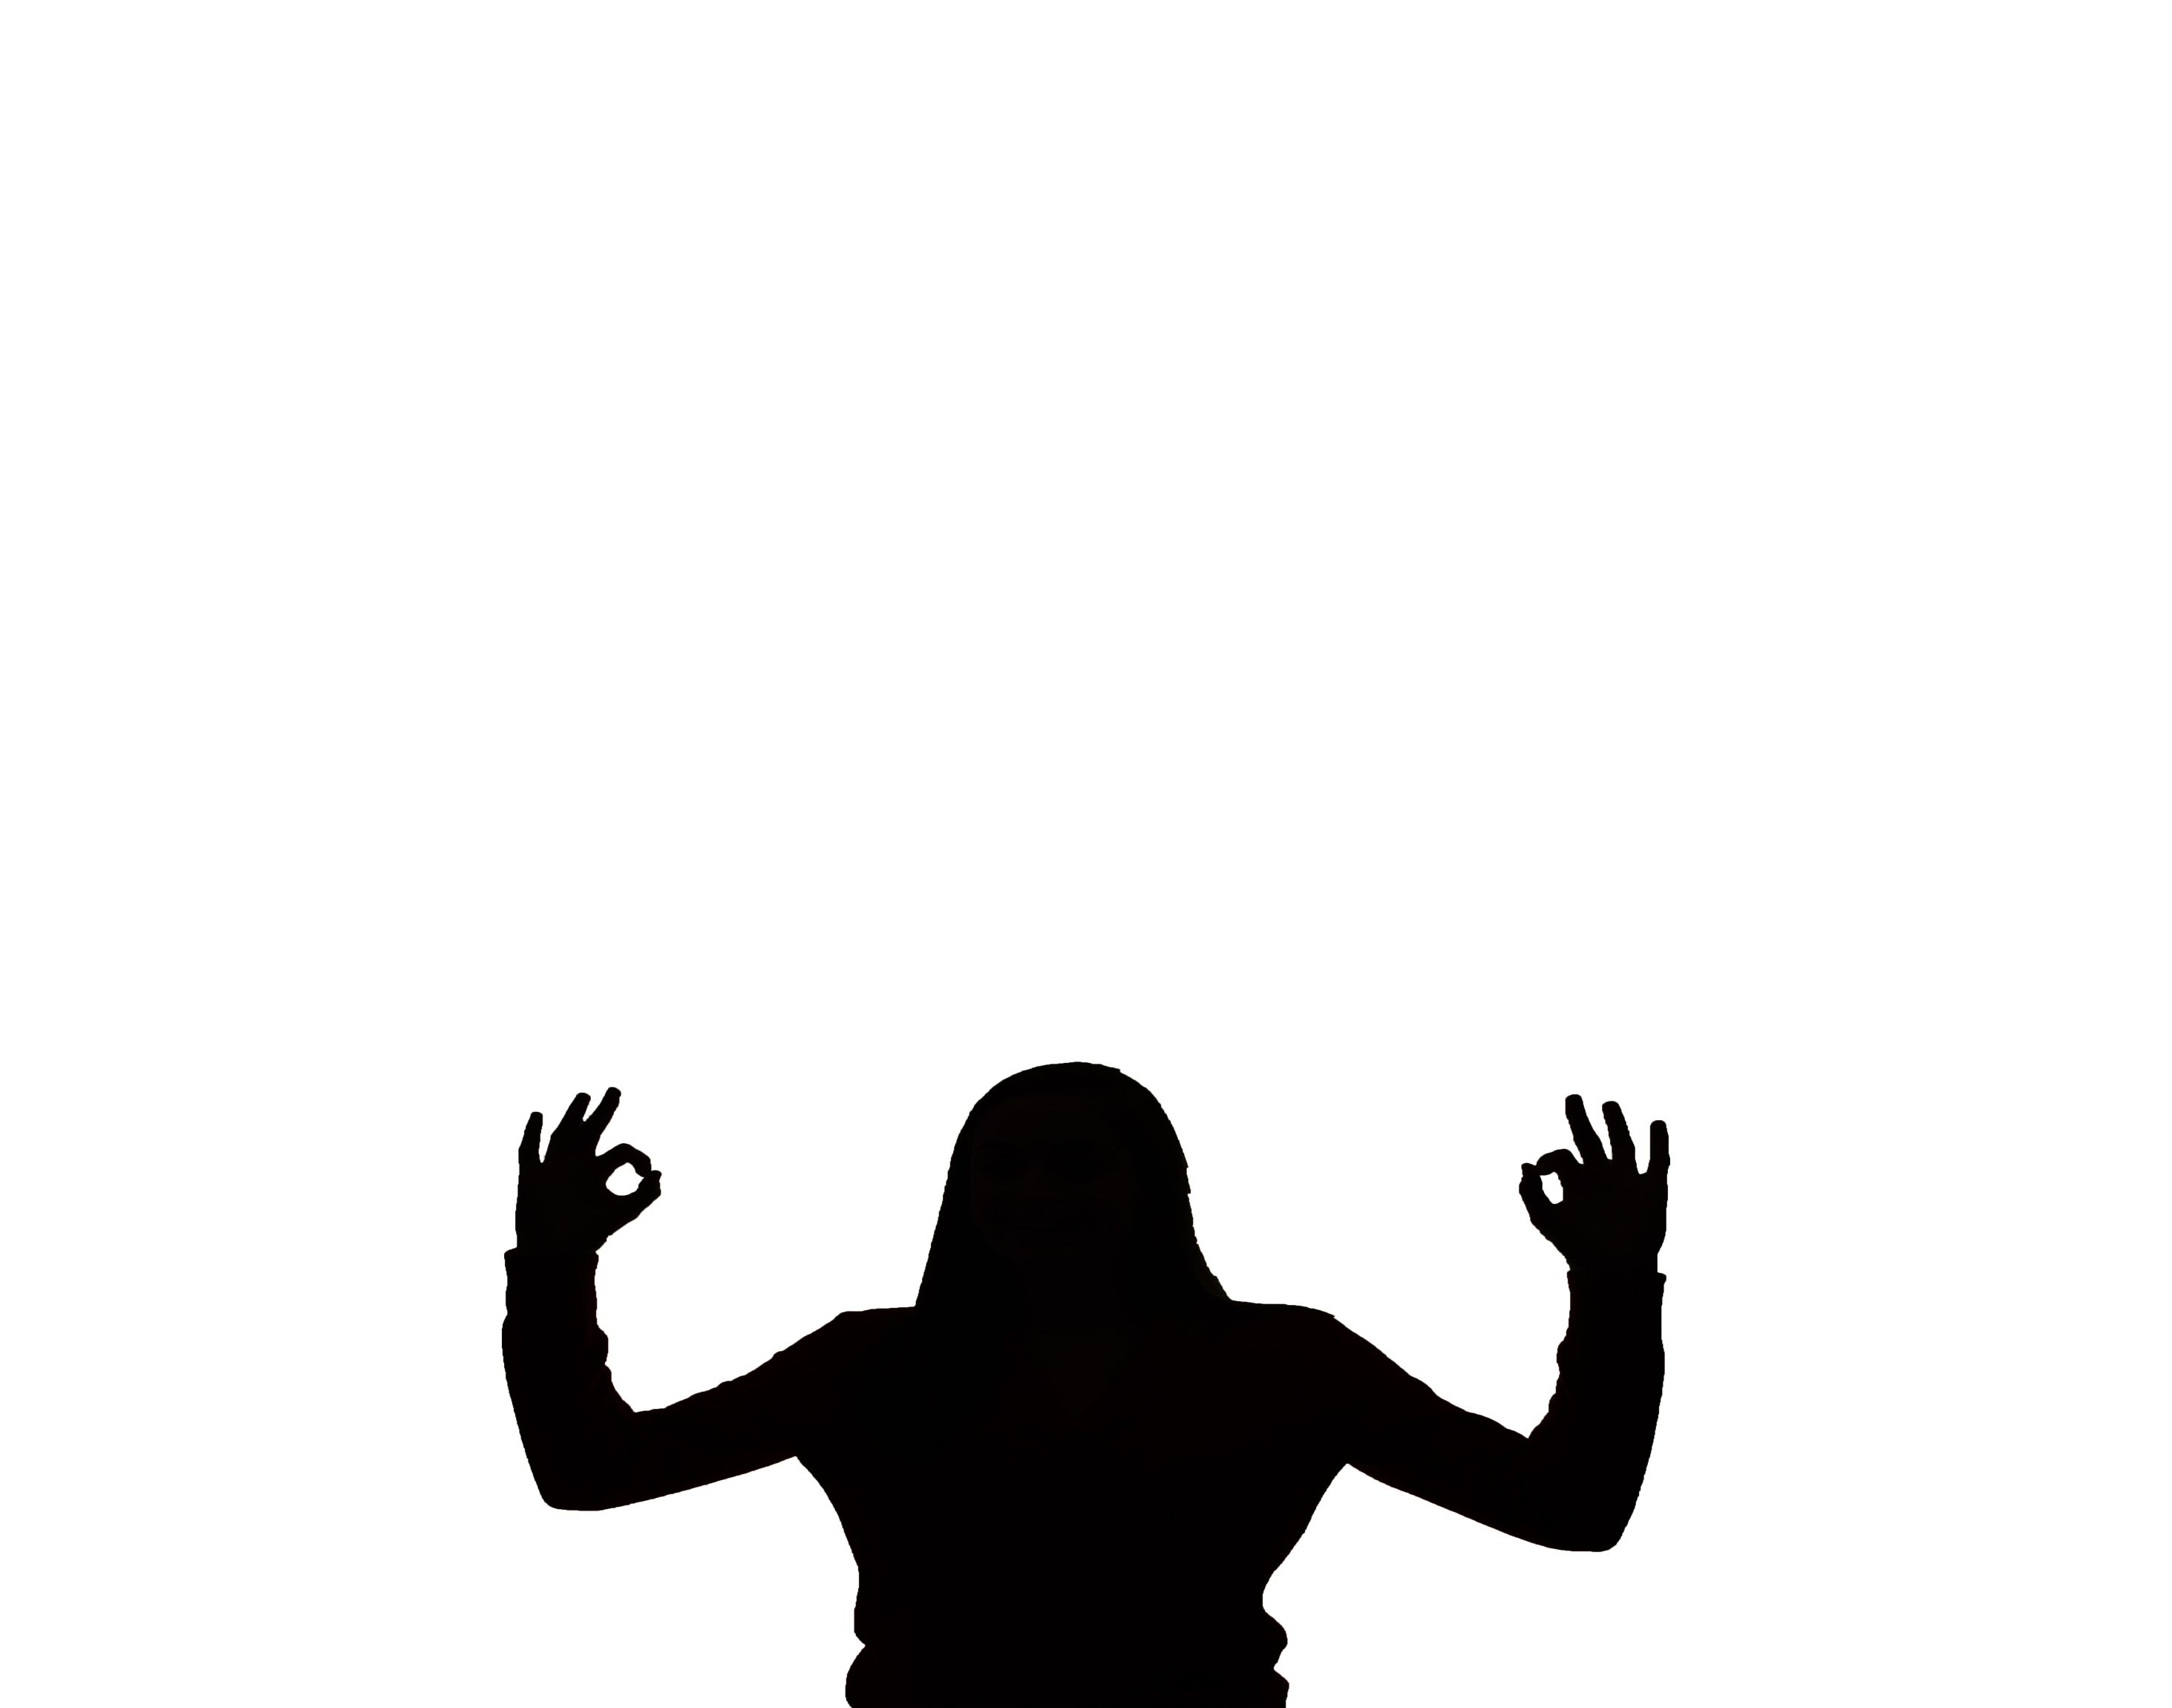 2926x2301 I Used This Silhouette Project To Take A Picture Of Myself And Put